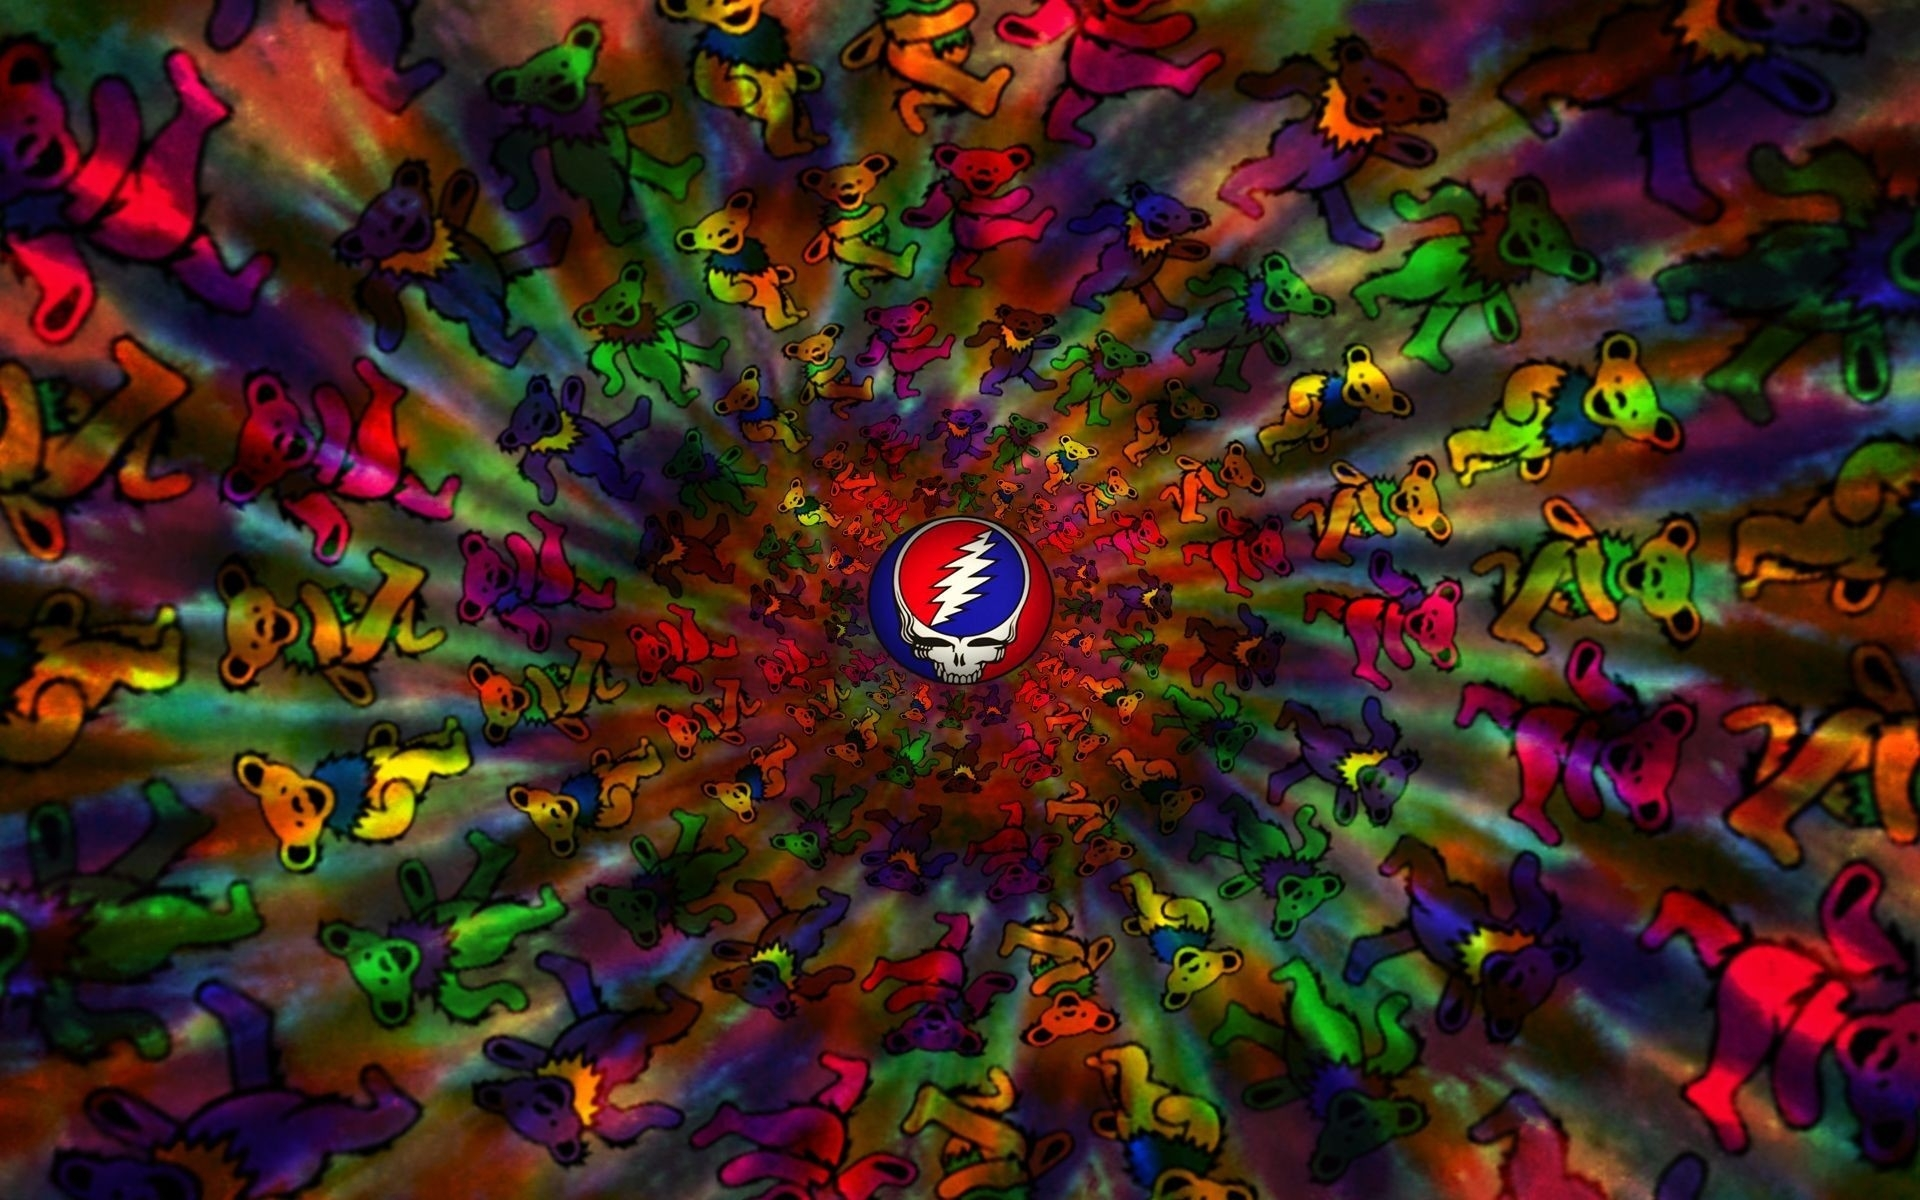 grateful dead wallpaper and screensavers (50+ images)